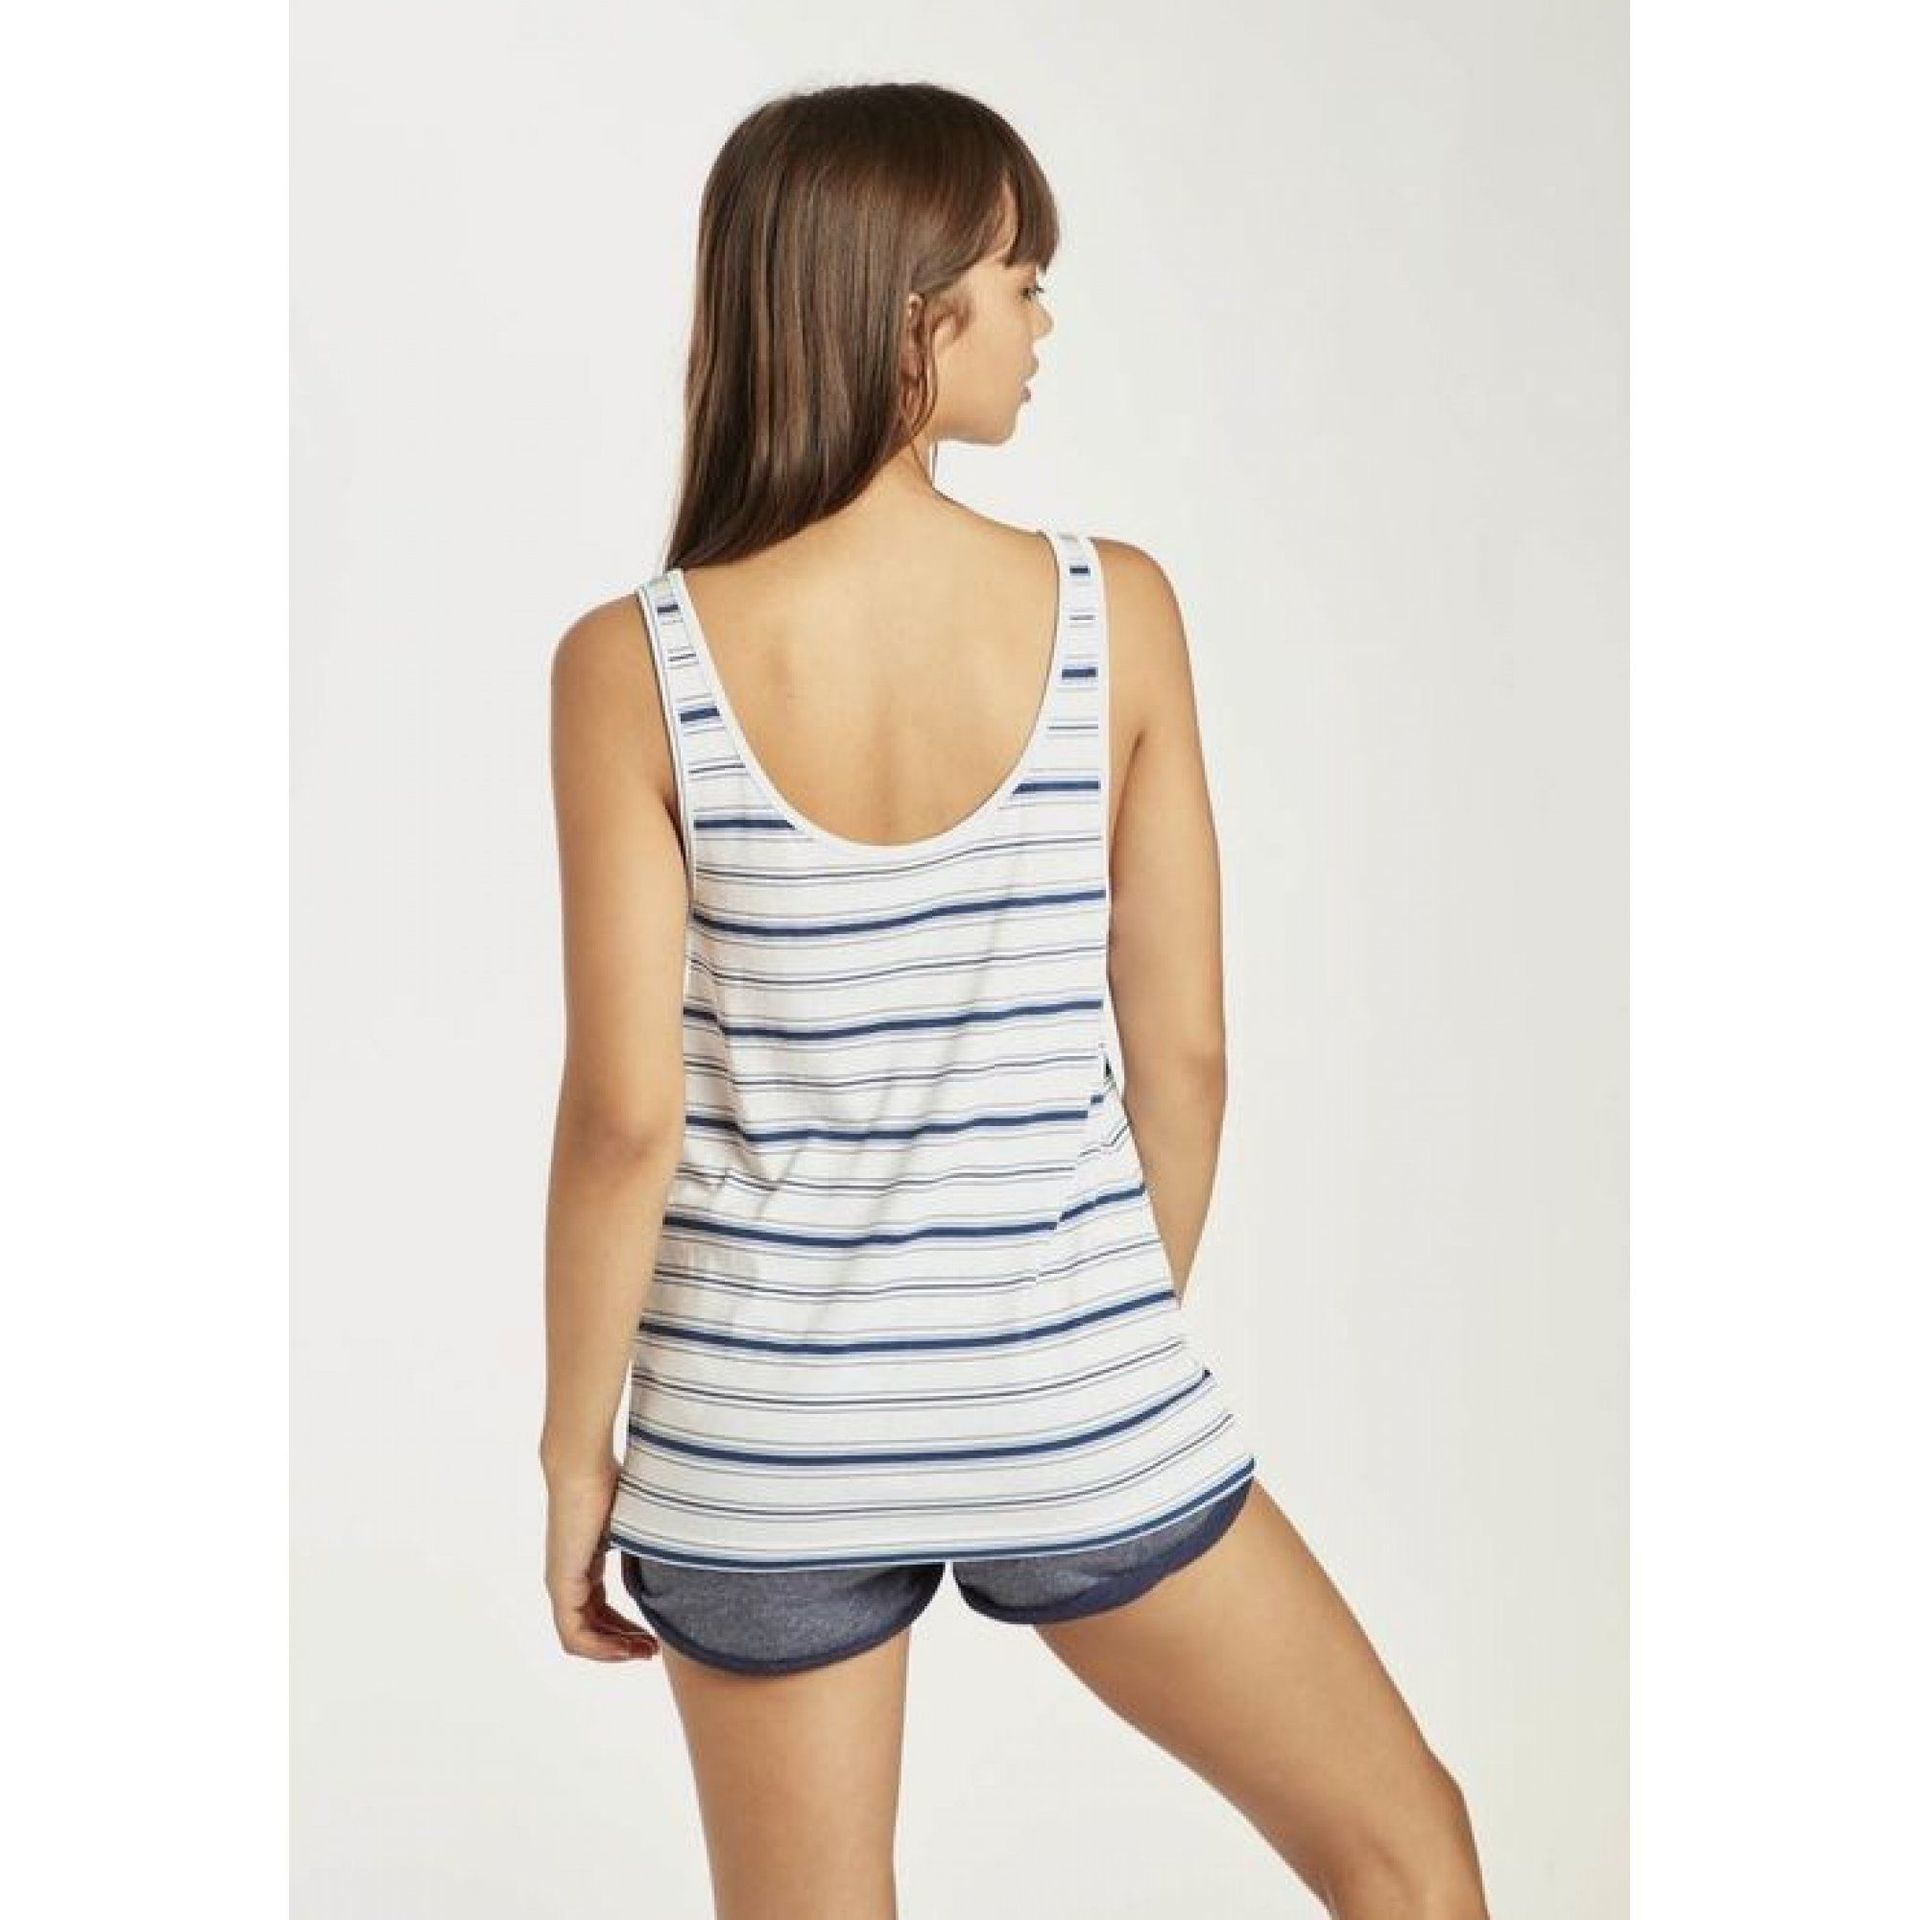 KOSZULKA BILLABONG BEACH DAY TANK BLUE STRIPES 2